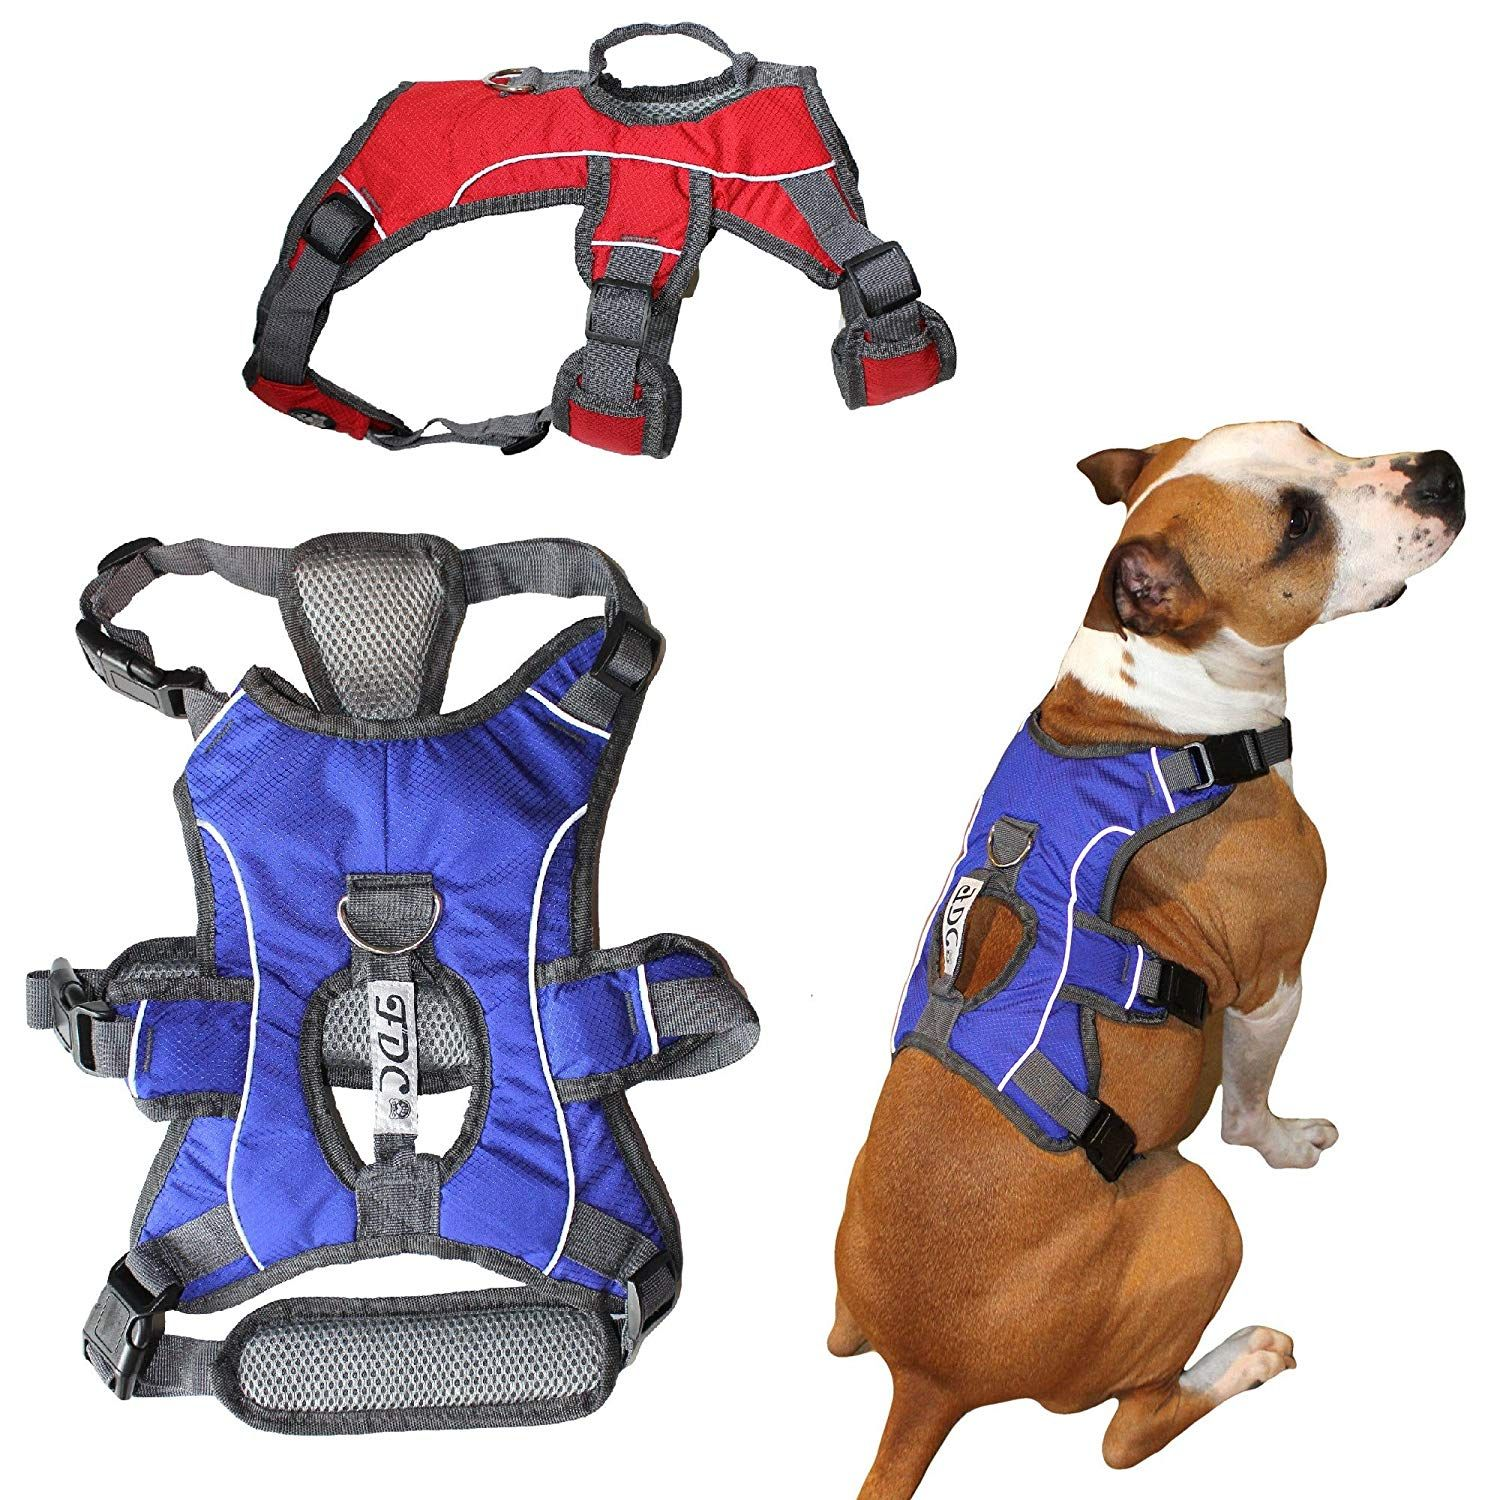 Fdc Heavy Duty Durable No Pull Comfortable Walking Working Dog Harness Vest With Handle And Reflective Stripes Padded Dog Vest Harness Dog Harness Working Dogs